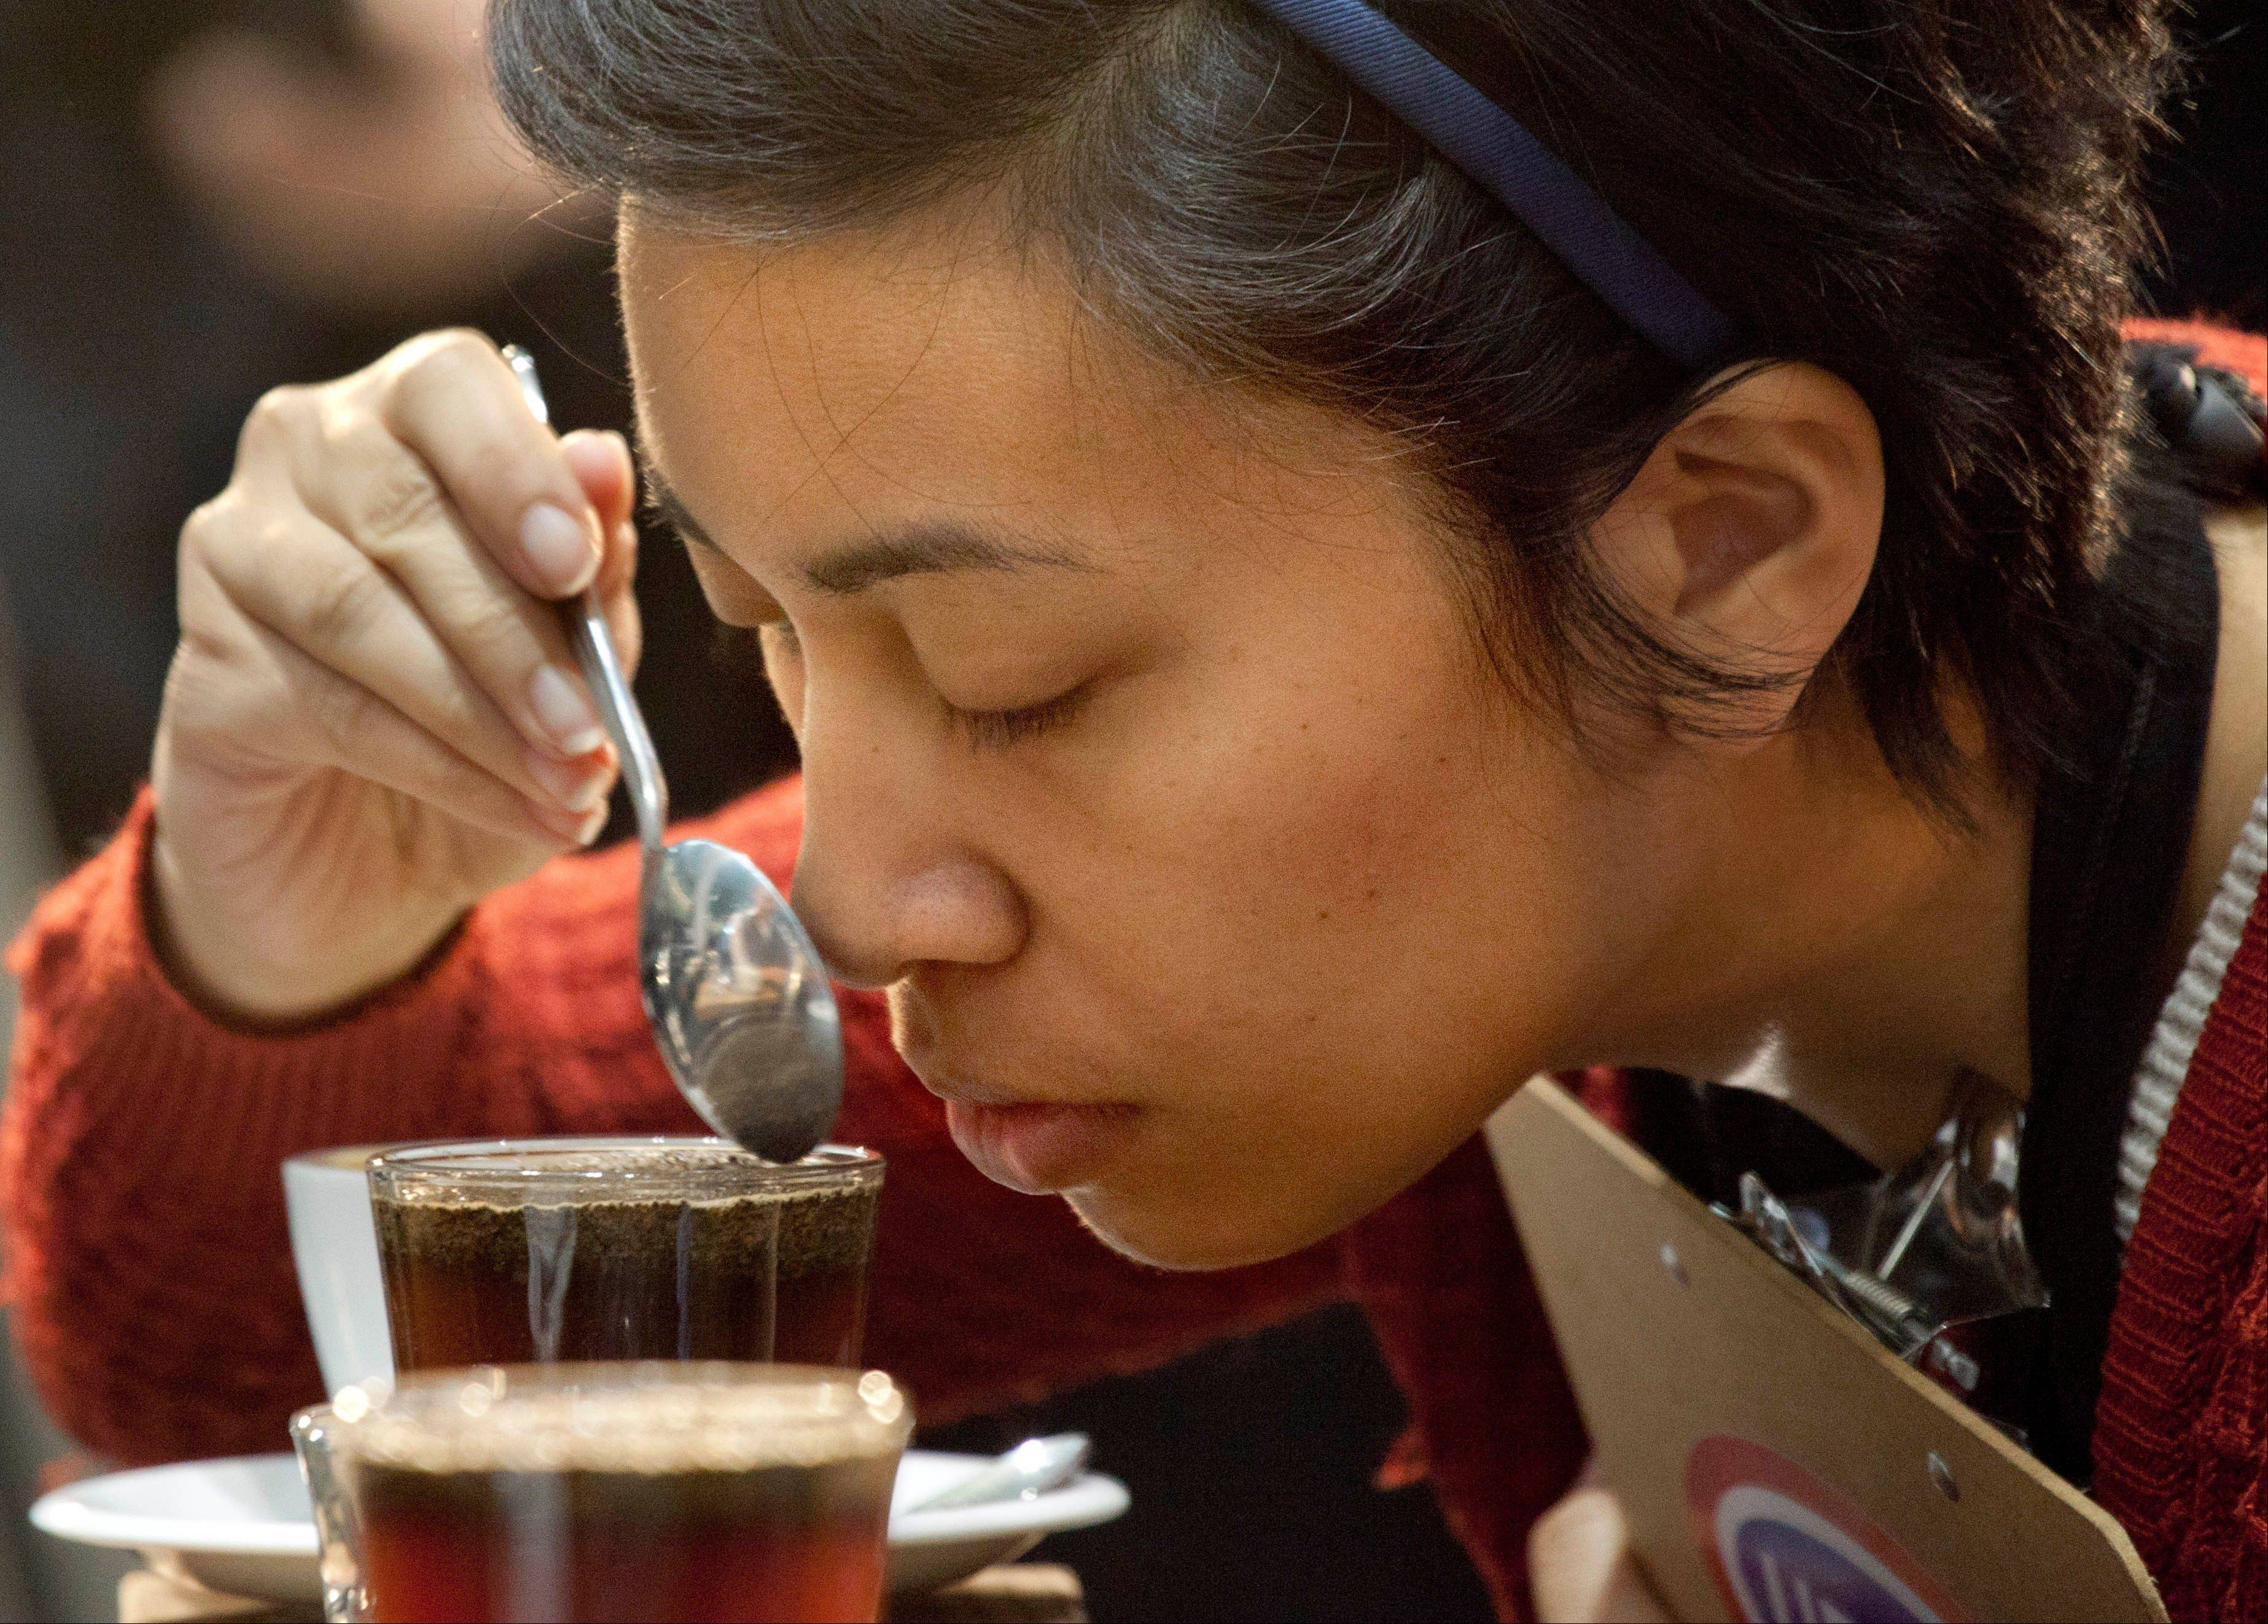 One of the judges tests the aroma of a brewed entry at the annual United States Barista Championship in Boston. Participants have 15 minutes to prepare and serve four espressos, four cappuccinos and four signature beverages, as they compete for a chance to go to the world championship in Melbourne, Australia.